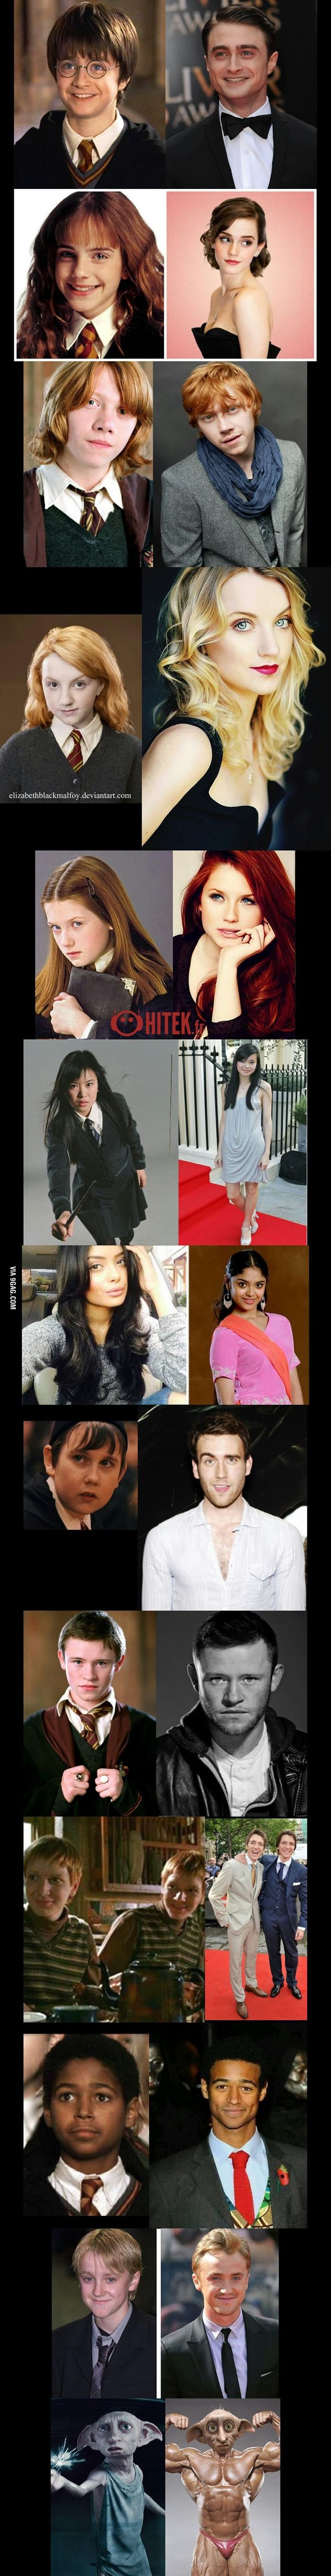 Harry Potter characters got seriously HOT! (Saved the best for last)